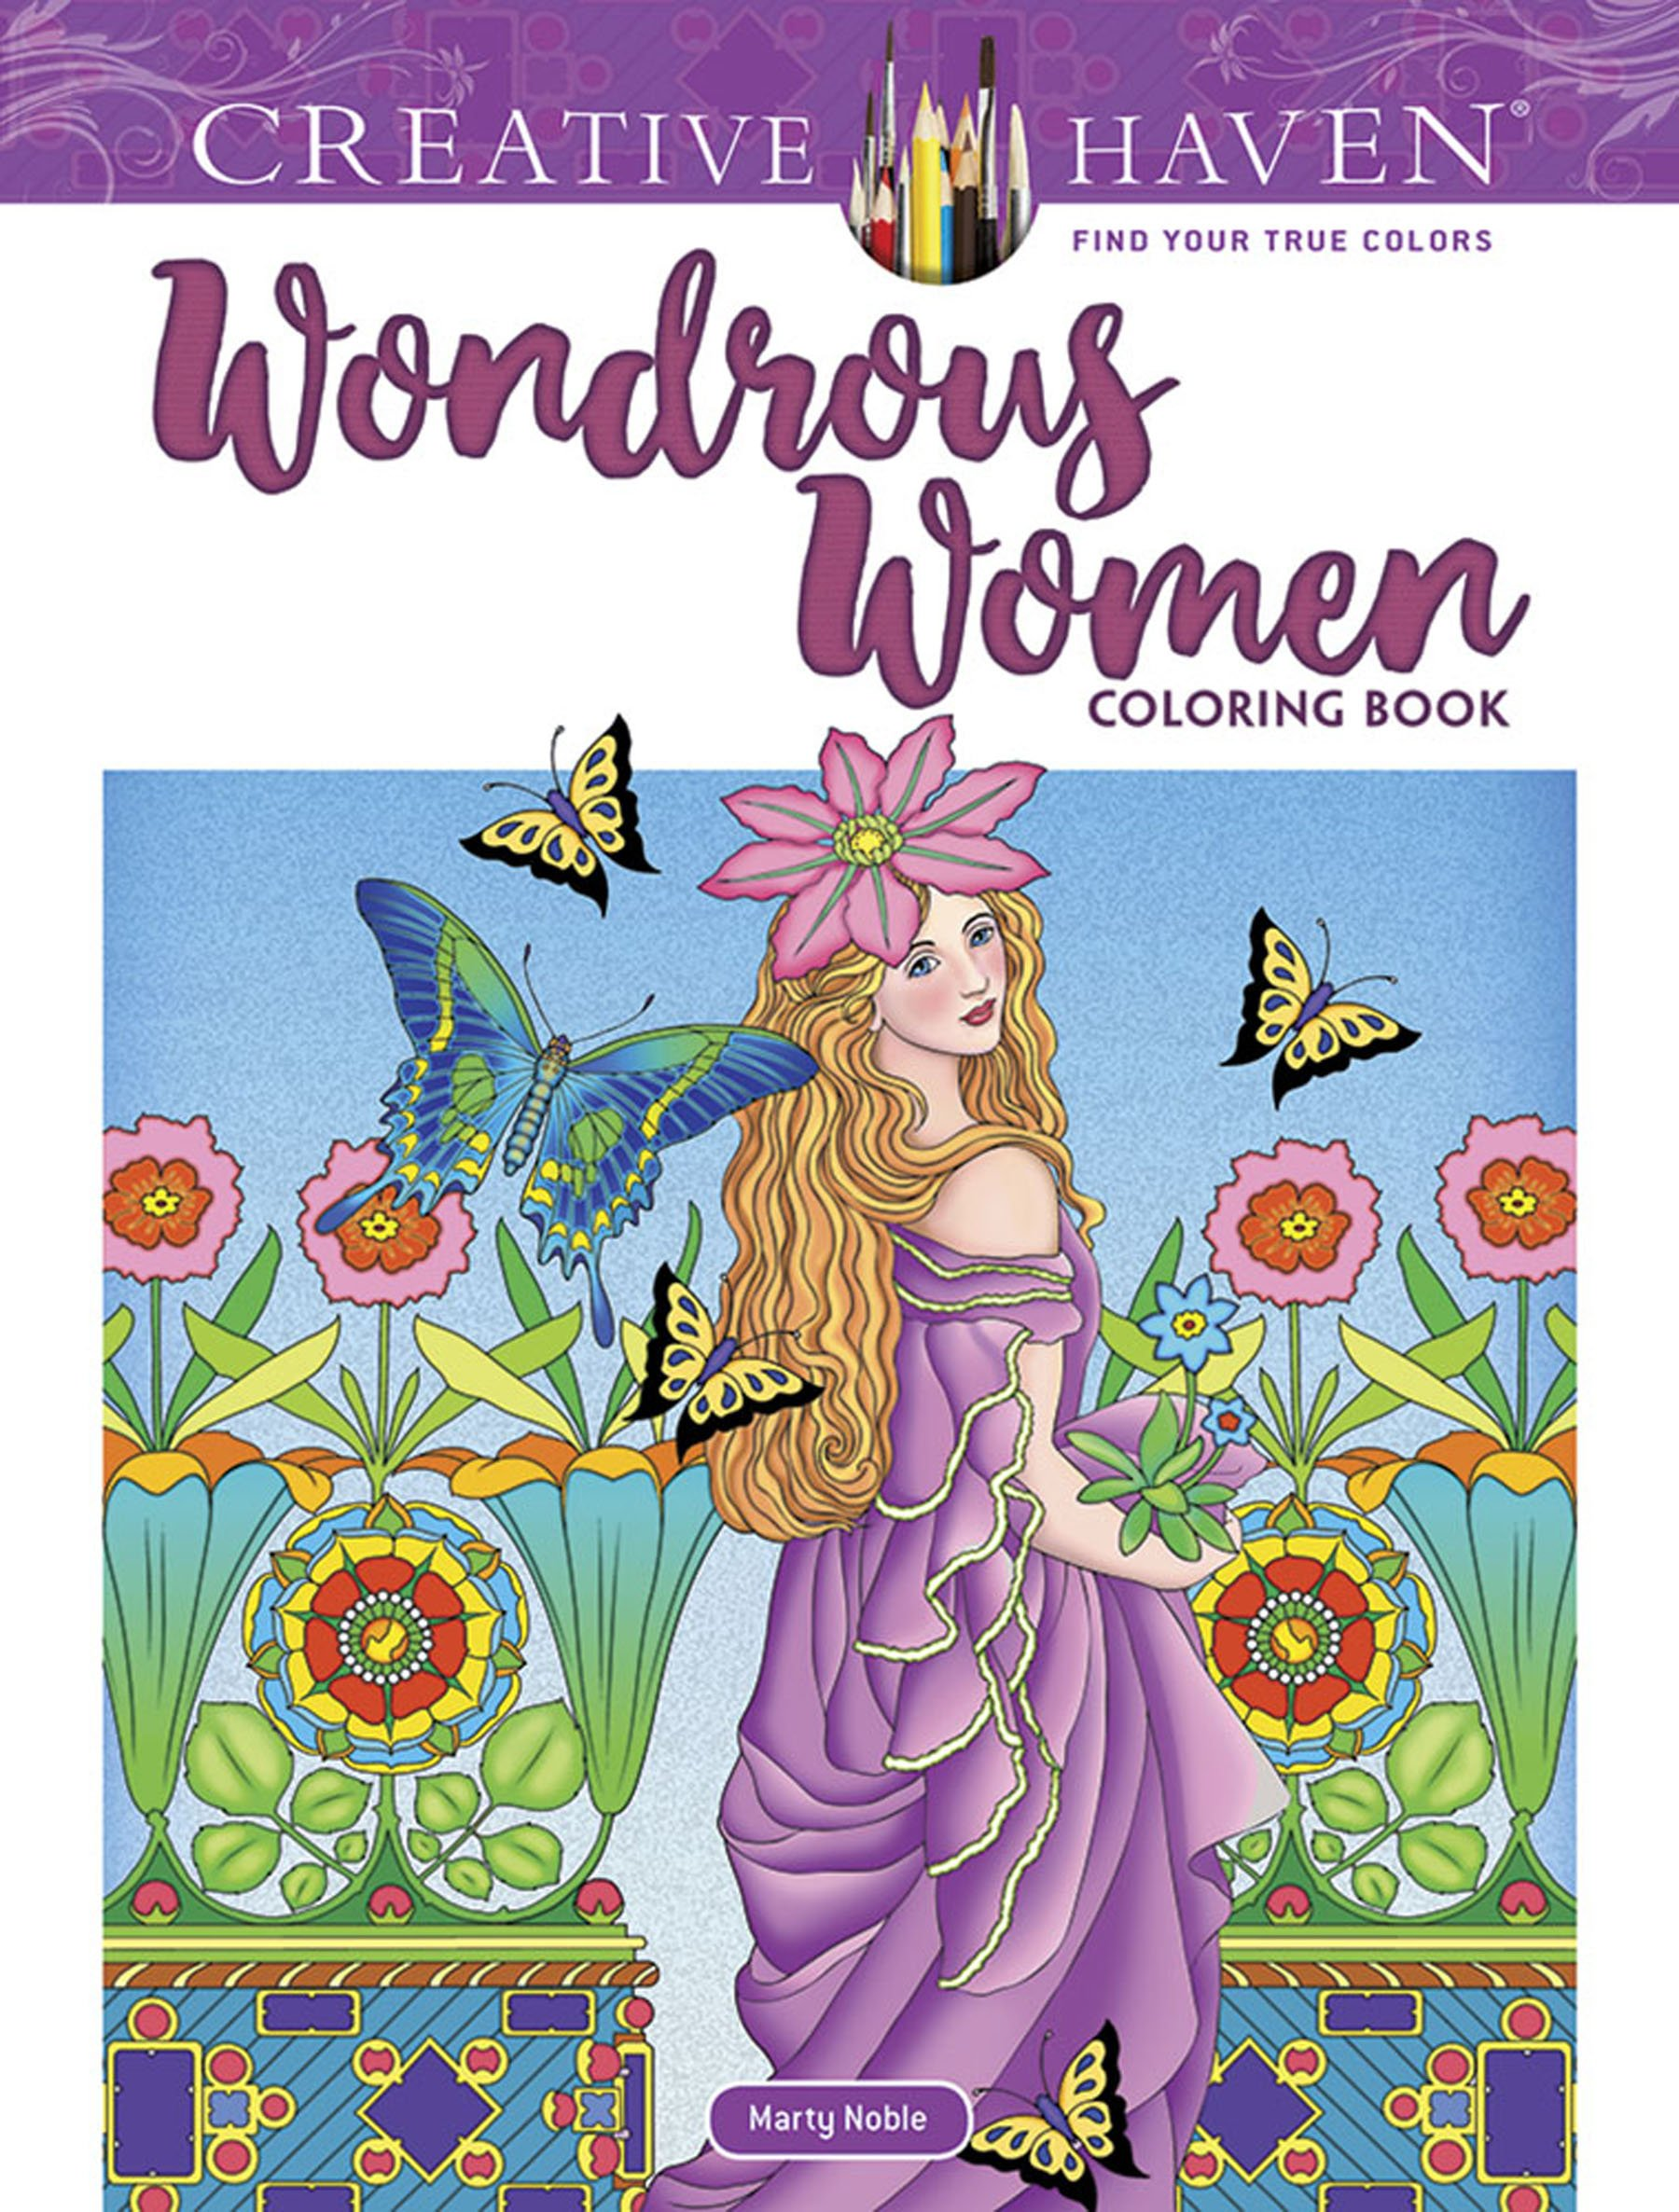 Amazon.com: Creative Haven Wondrous Women Coloring Book (Adult Coloring)  (9780486828466): Marty Noble: Books